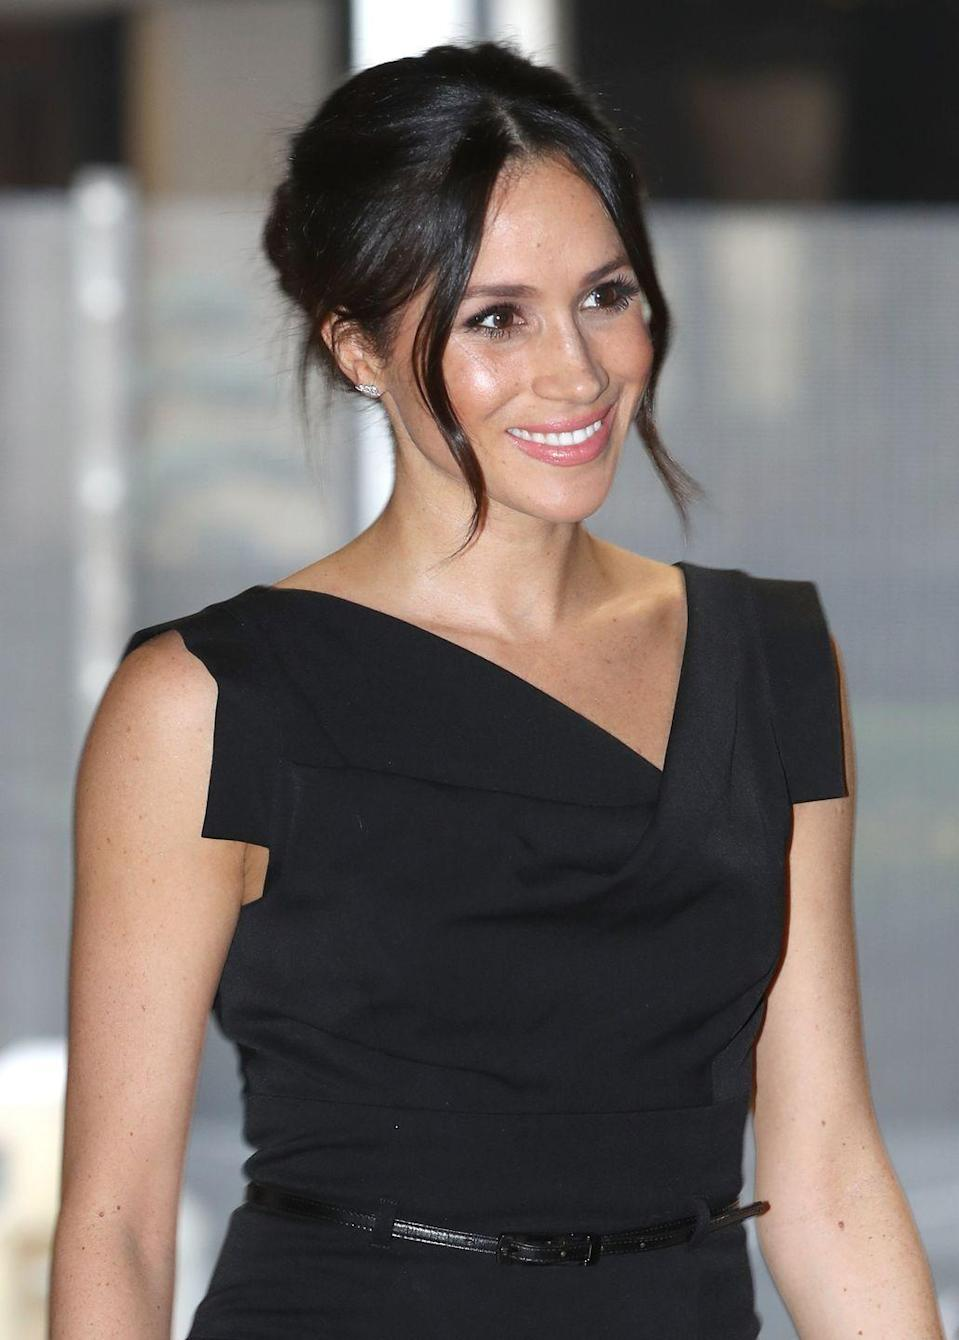 """<p>Although Meghan didn't technically break protocol by guest editing the September issue of <em>British Vogue</em>, it was unprecedented. Instead of following in the path of Kate Middleton and appearing on the cover, Meghan forged her own way with a collective cover <a href=""""https://www.cosmopolitan.com/uk/reports/a28534590/meghan-markle-british-vogue-guest-editor-september-issue/"""" rel=""""nofollow noopener"""" target=""""_blank"""" data-ylk=""""slk:that made a statement"""" class=""""link rapid-noclick-resp"""">that made a statement</a>. </p>"""